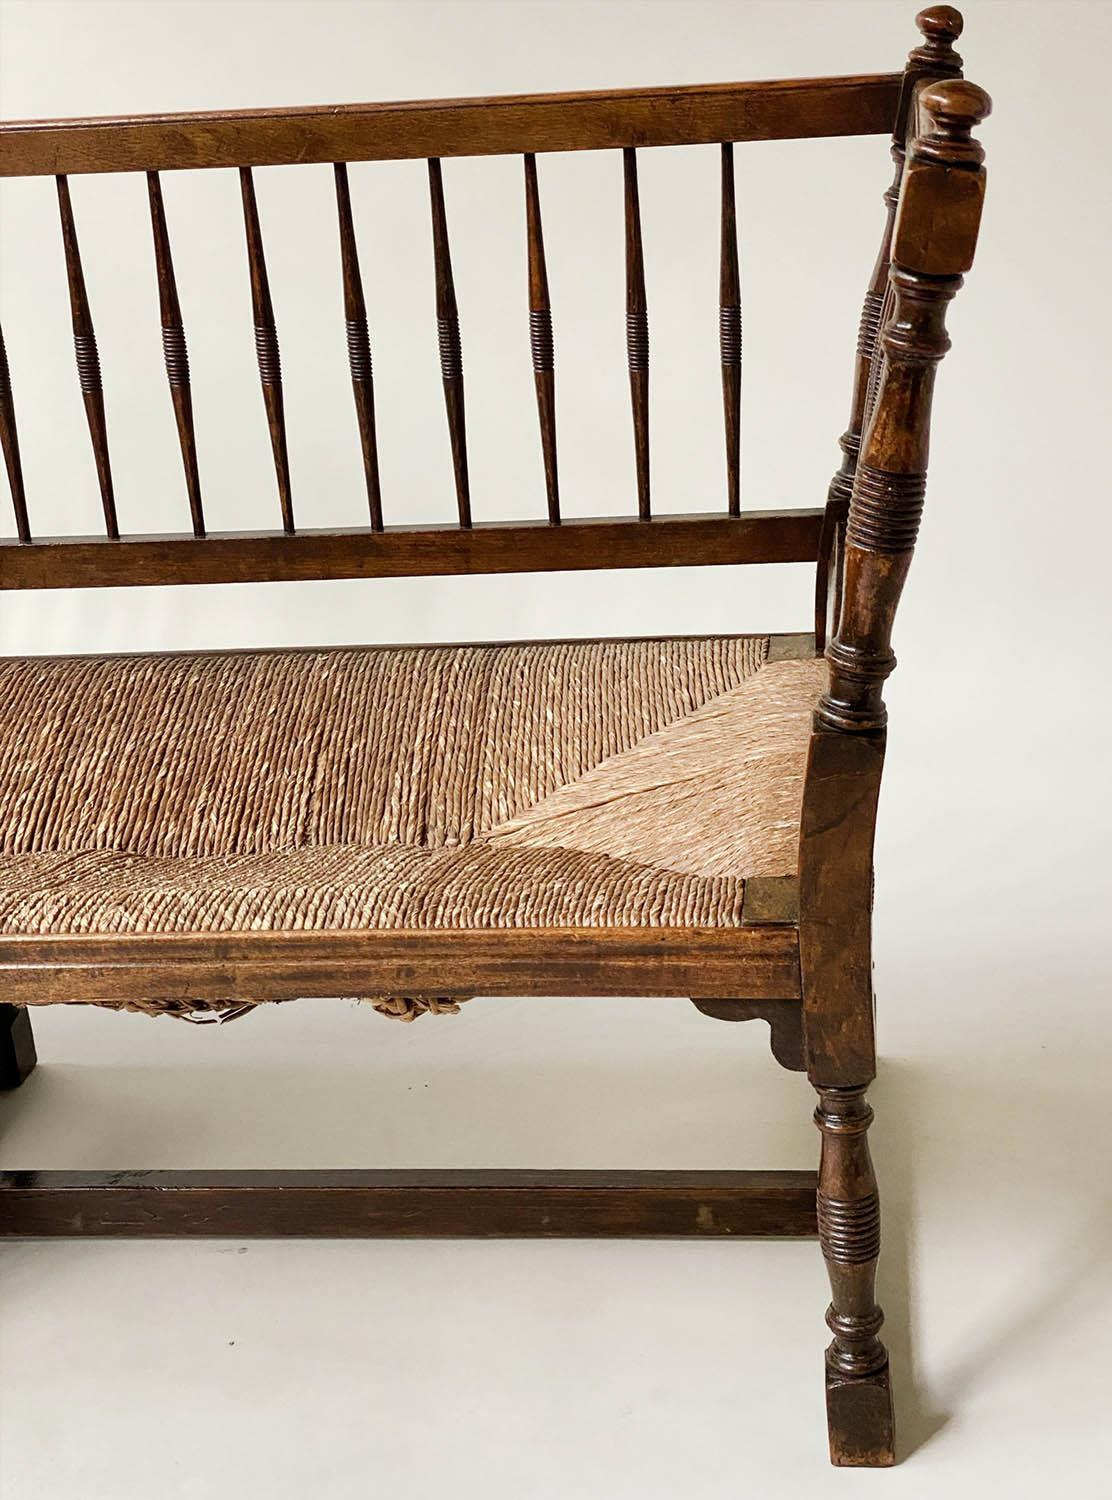 HALL BENCH, 19th century English oak with spindle back rush seat and stretchered turned supports, - Image 2 of 9